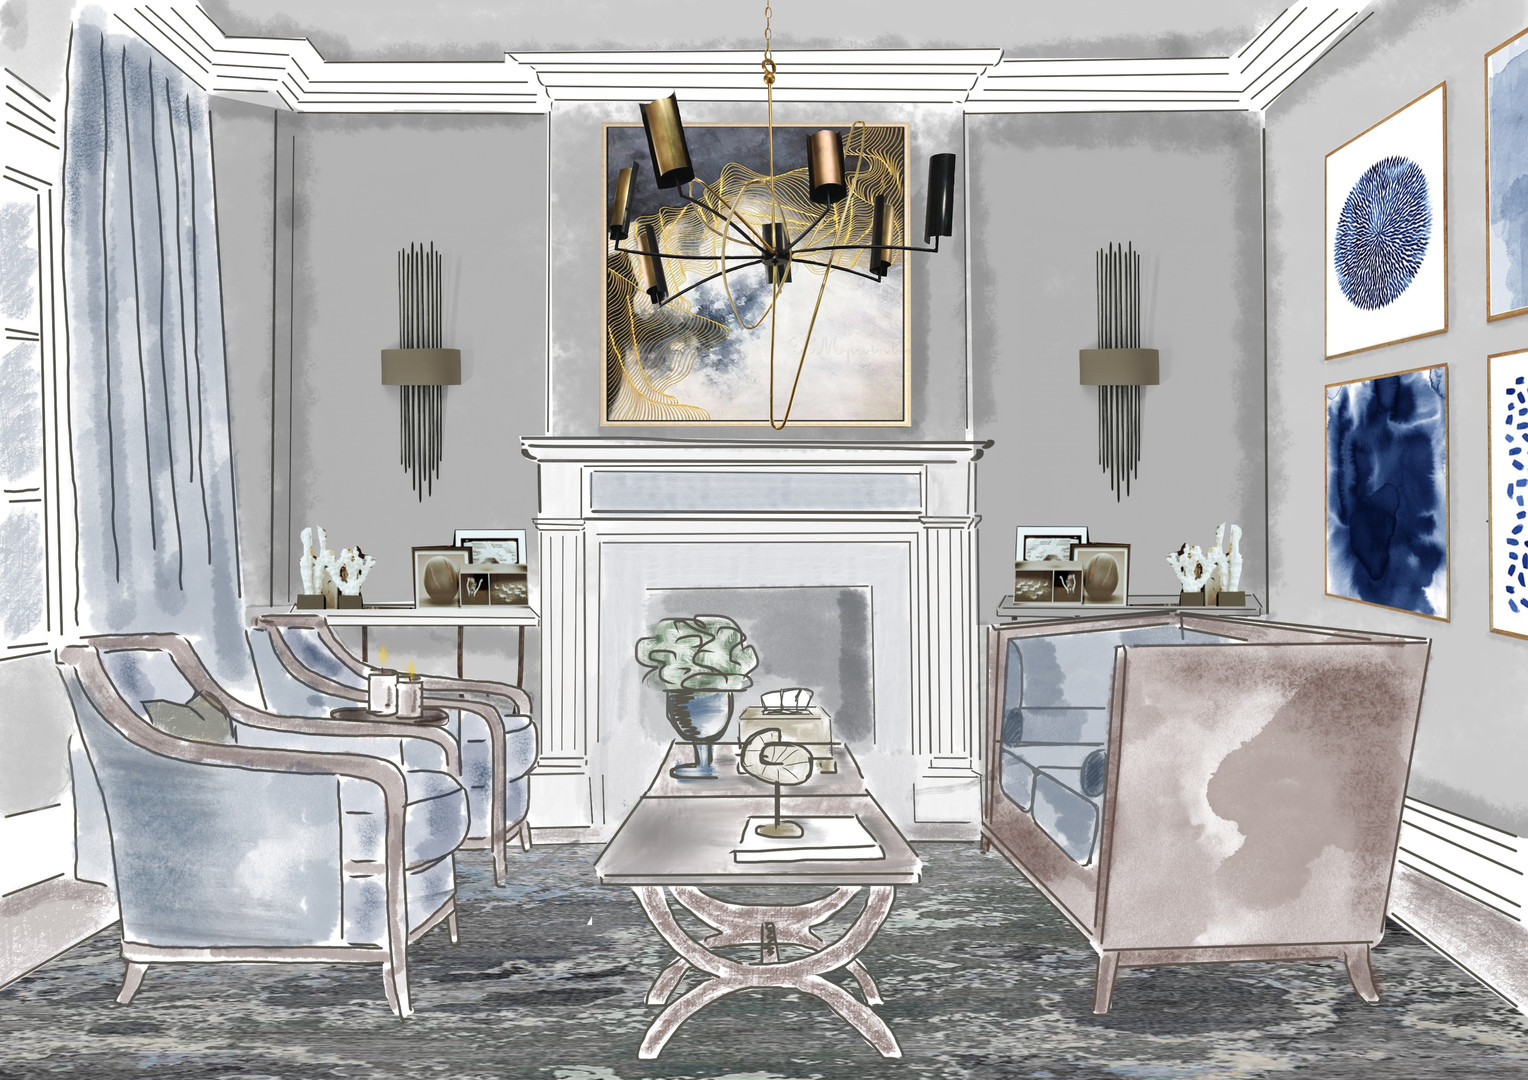 Interior design sketch Anna K Studio